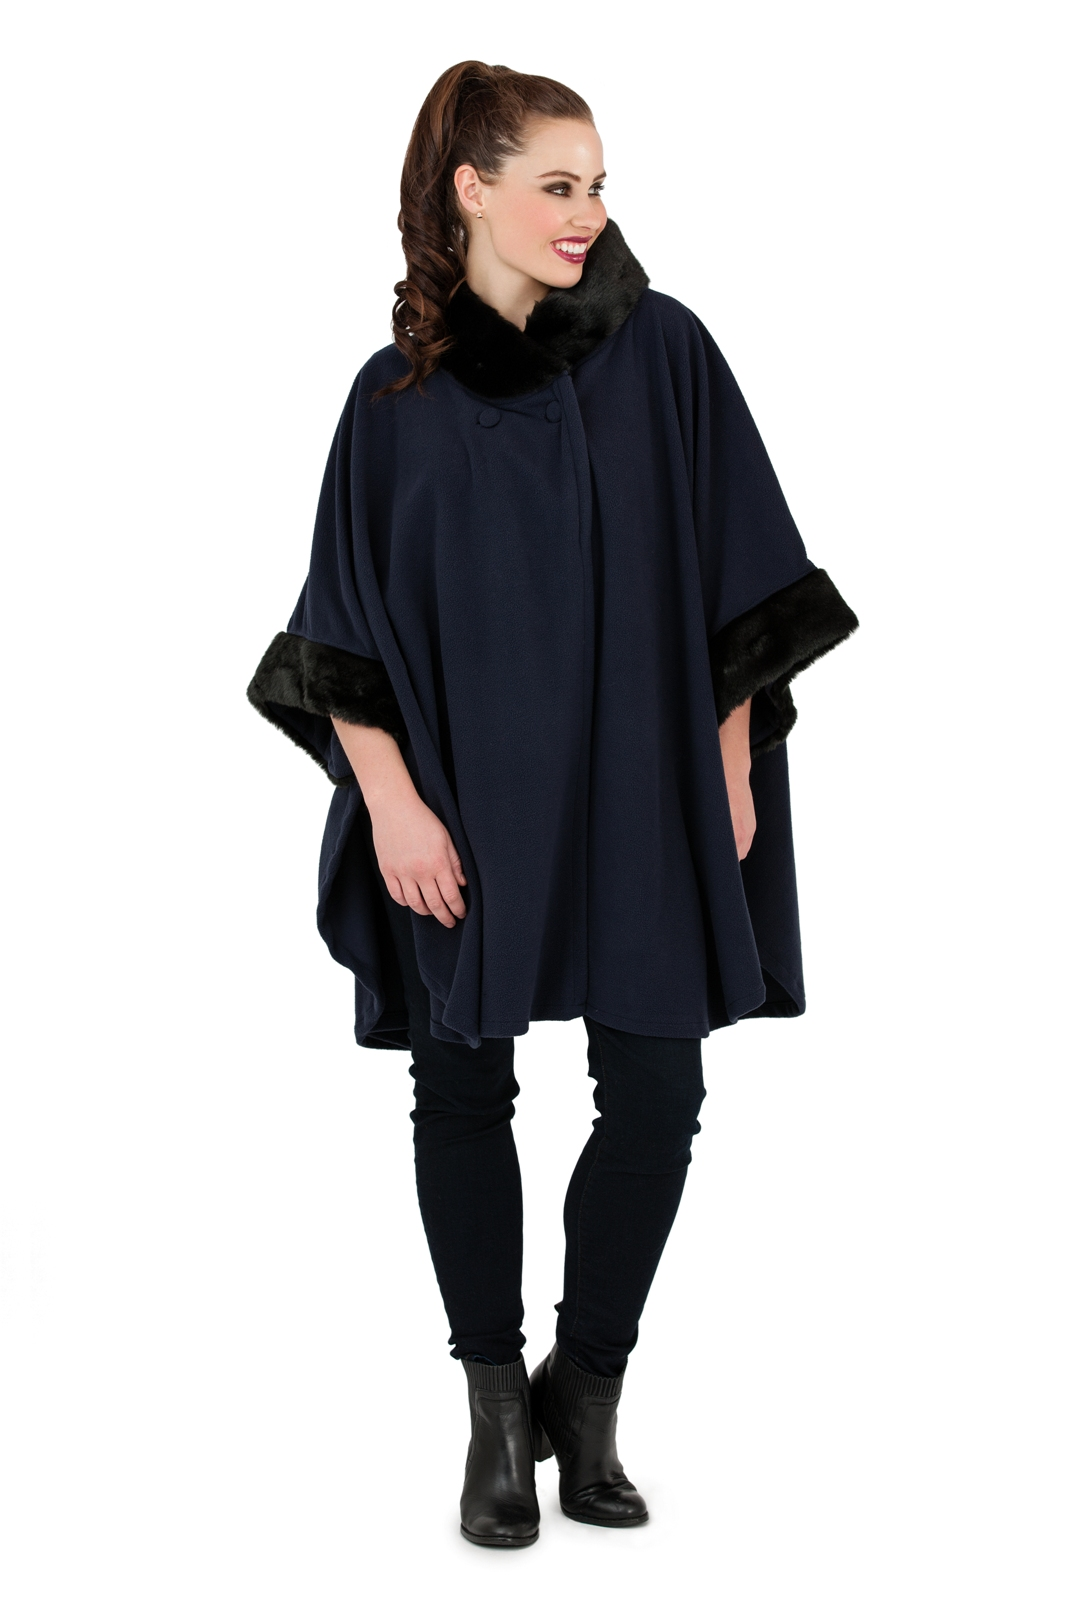 Find great deals on eBay for womens black poncho. Shop with confidence.